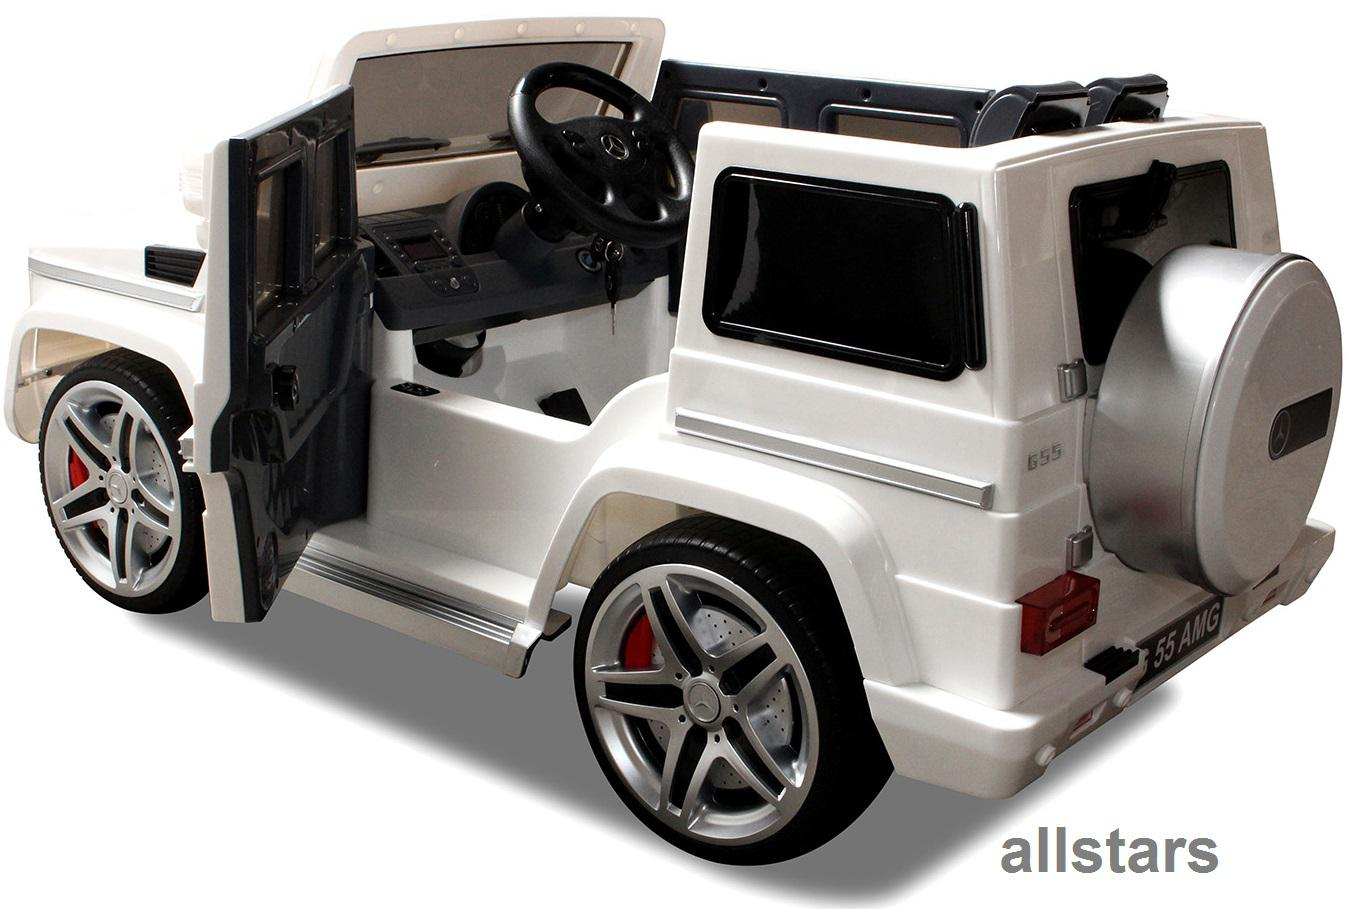 elektro kinderauto mercedes amg g55005 lizenziert. Black Bedroom Furniture Sets. Home Design Ideas